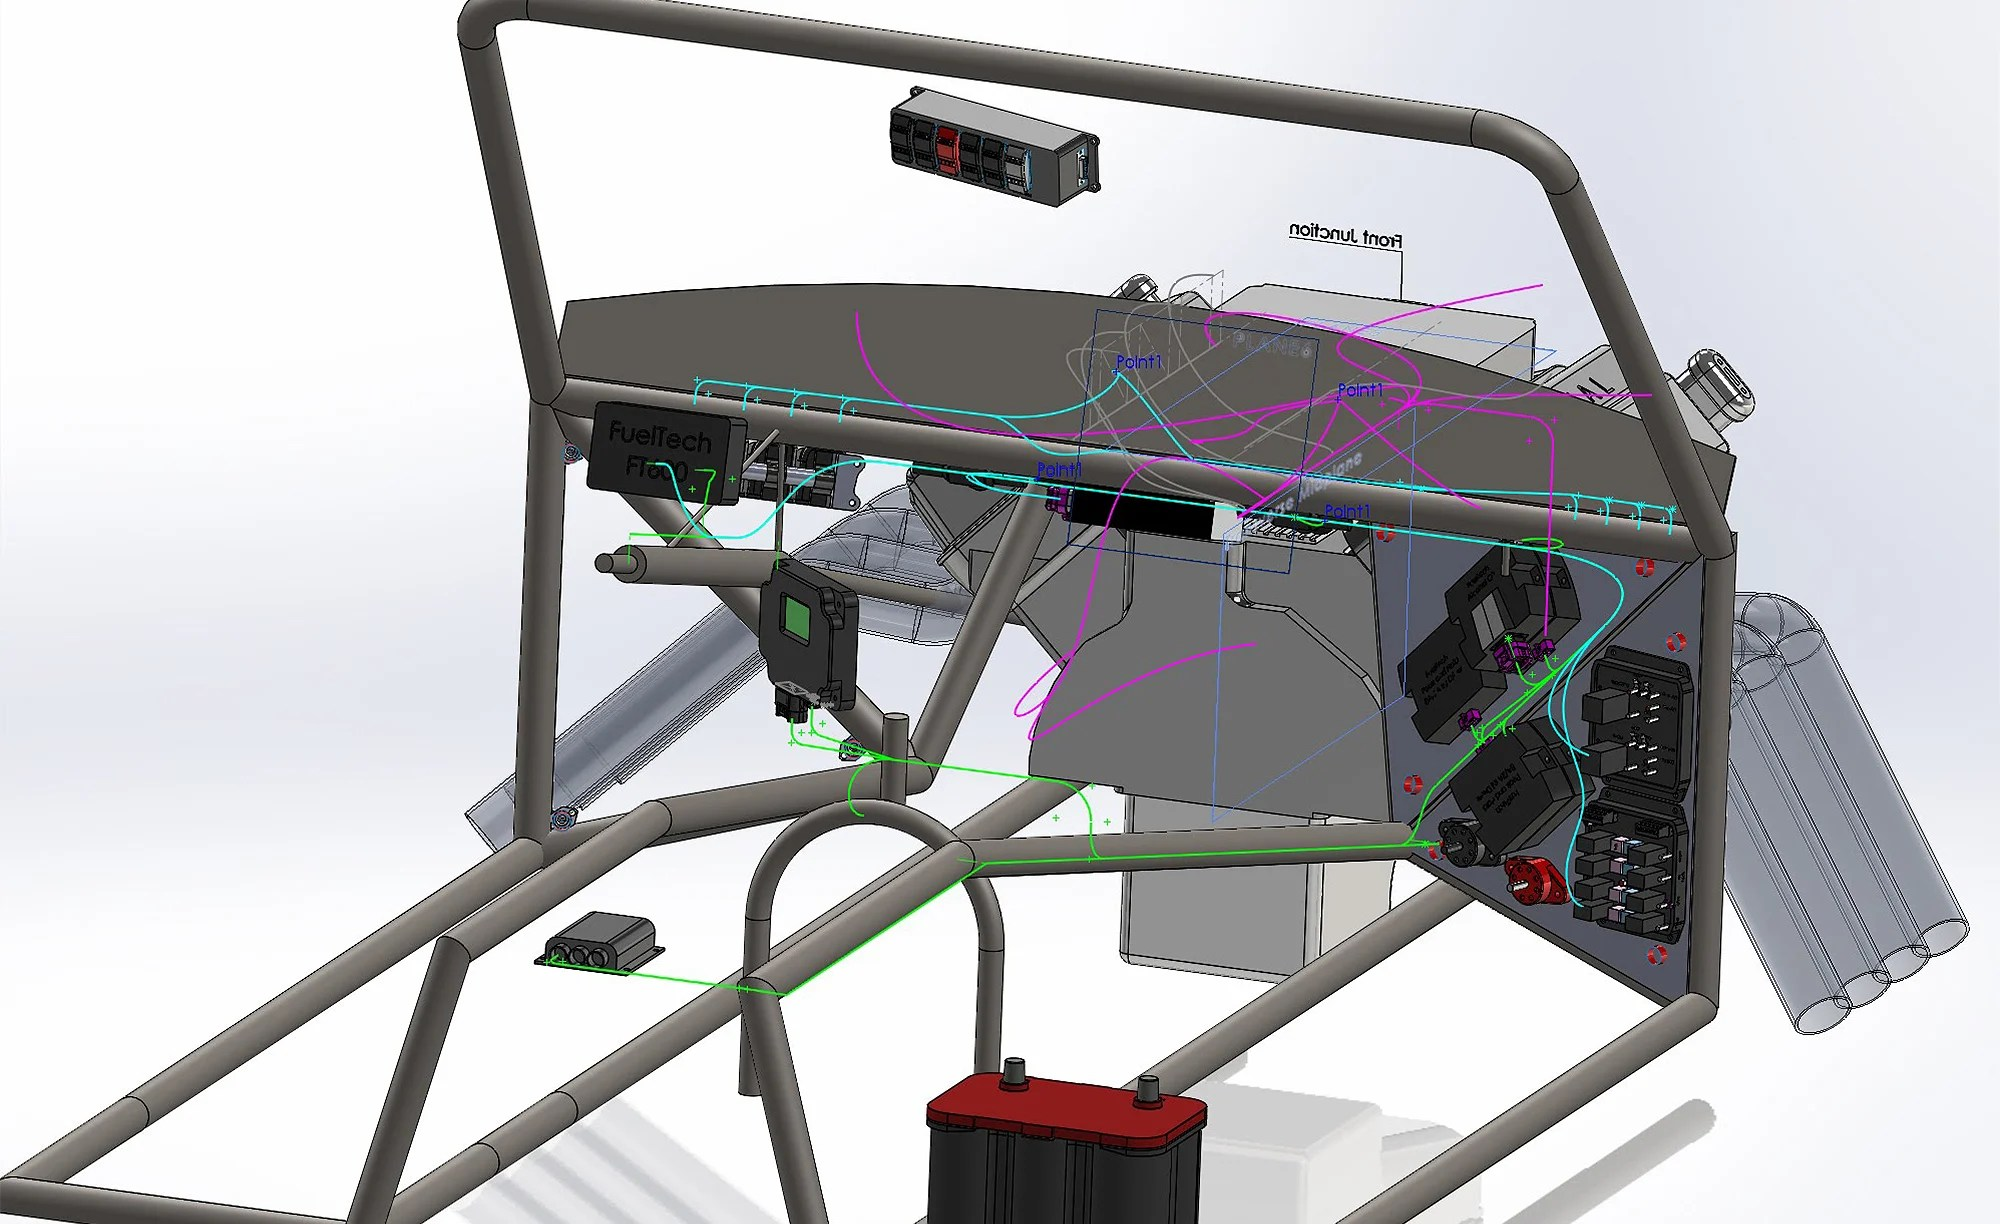 hight resolution of with careful measuring and entry of the dimensions into a 3d cad system jeff jordan precisely creates the electrical harness sections without needing to